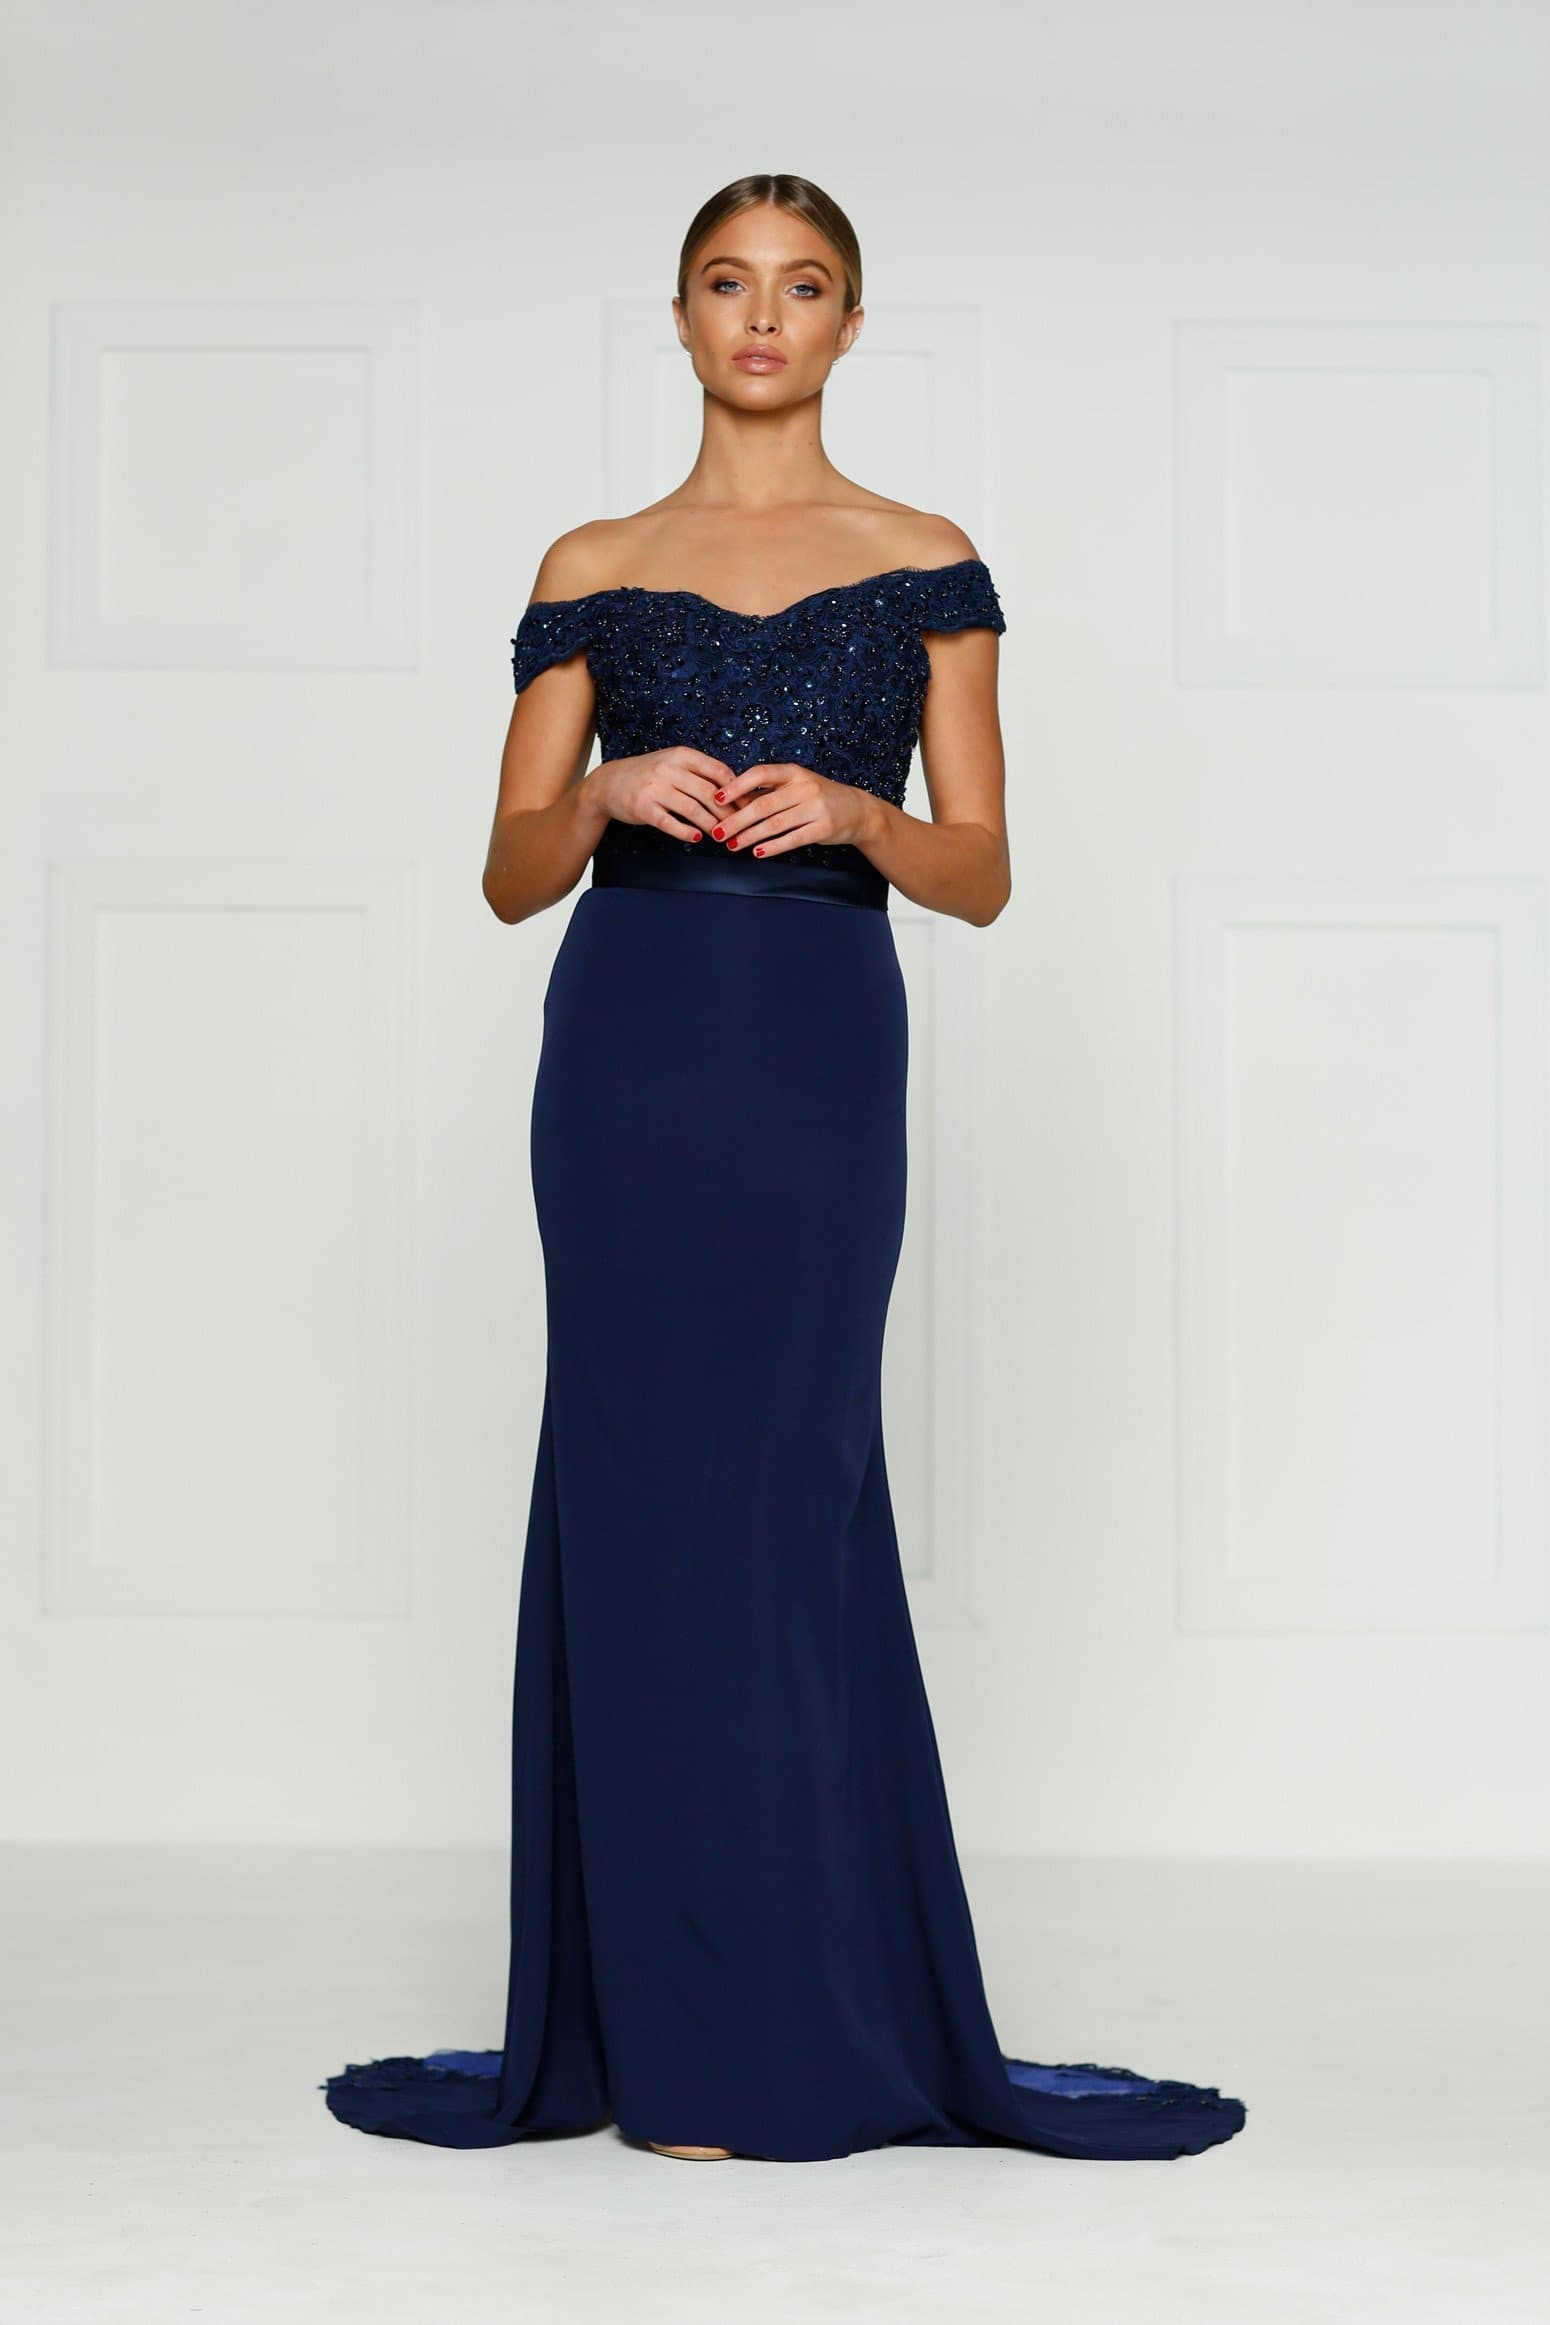 A&N Sandy - Navy Lace Gown with Off-Shoulder Straps